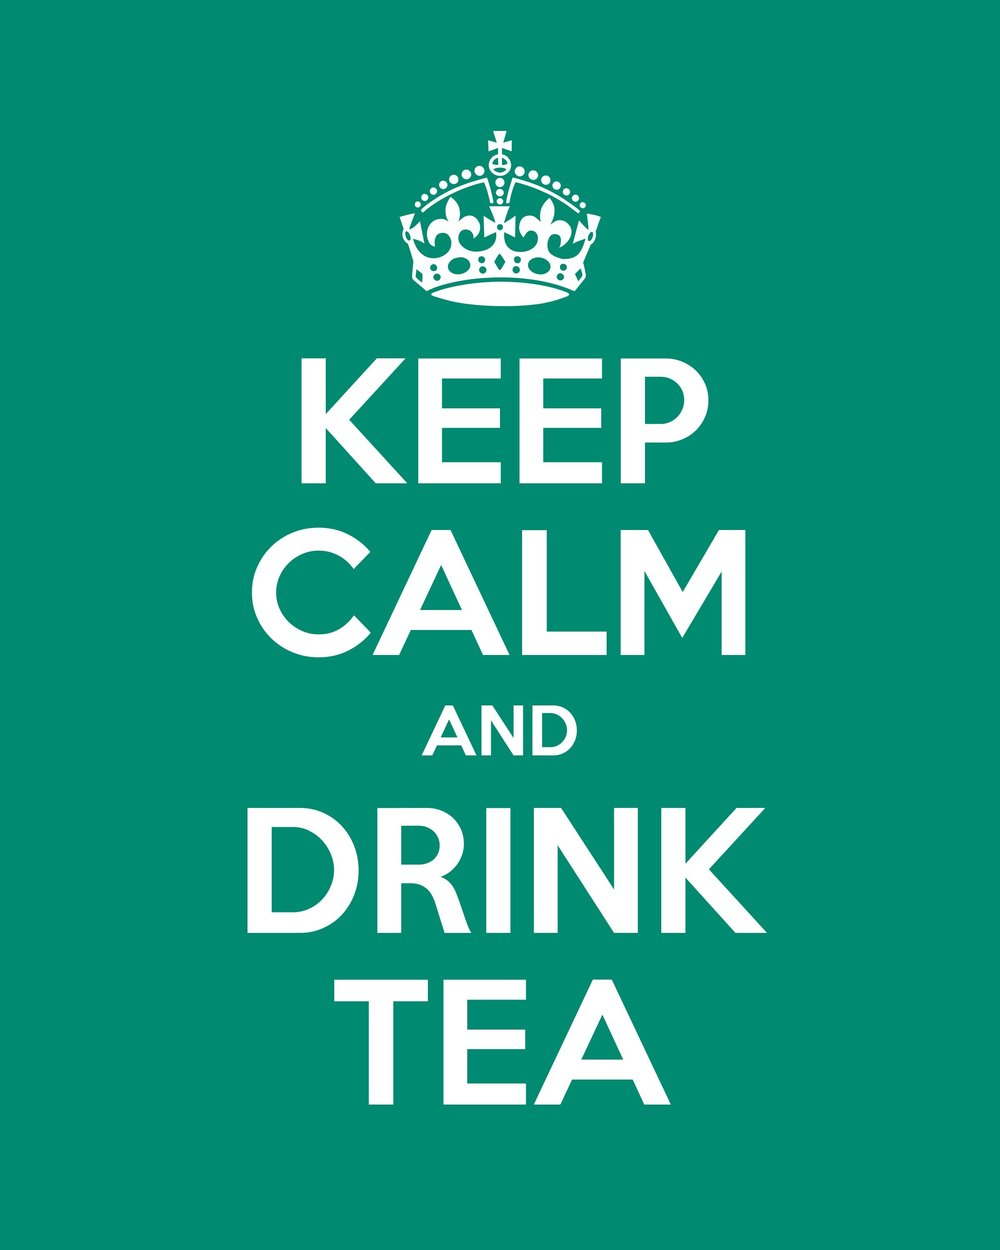 - Keep Calm and...Here's a versatile print to personalise as you wish for a work colleague. Picked a tea addict in your secret Santa? Then this print might be for you. Or perhaps your team would appreciate a calming influence on the wall when you're all a bit under the cosh. The possibilities are endless on how you can personalise this design to suit your particular sector...